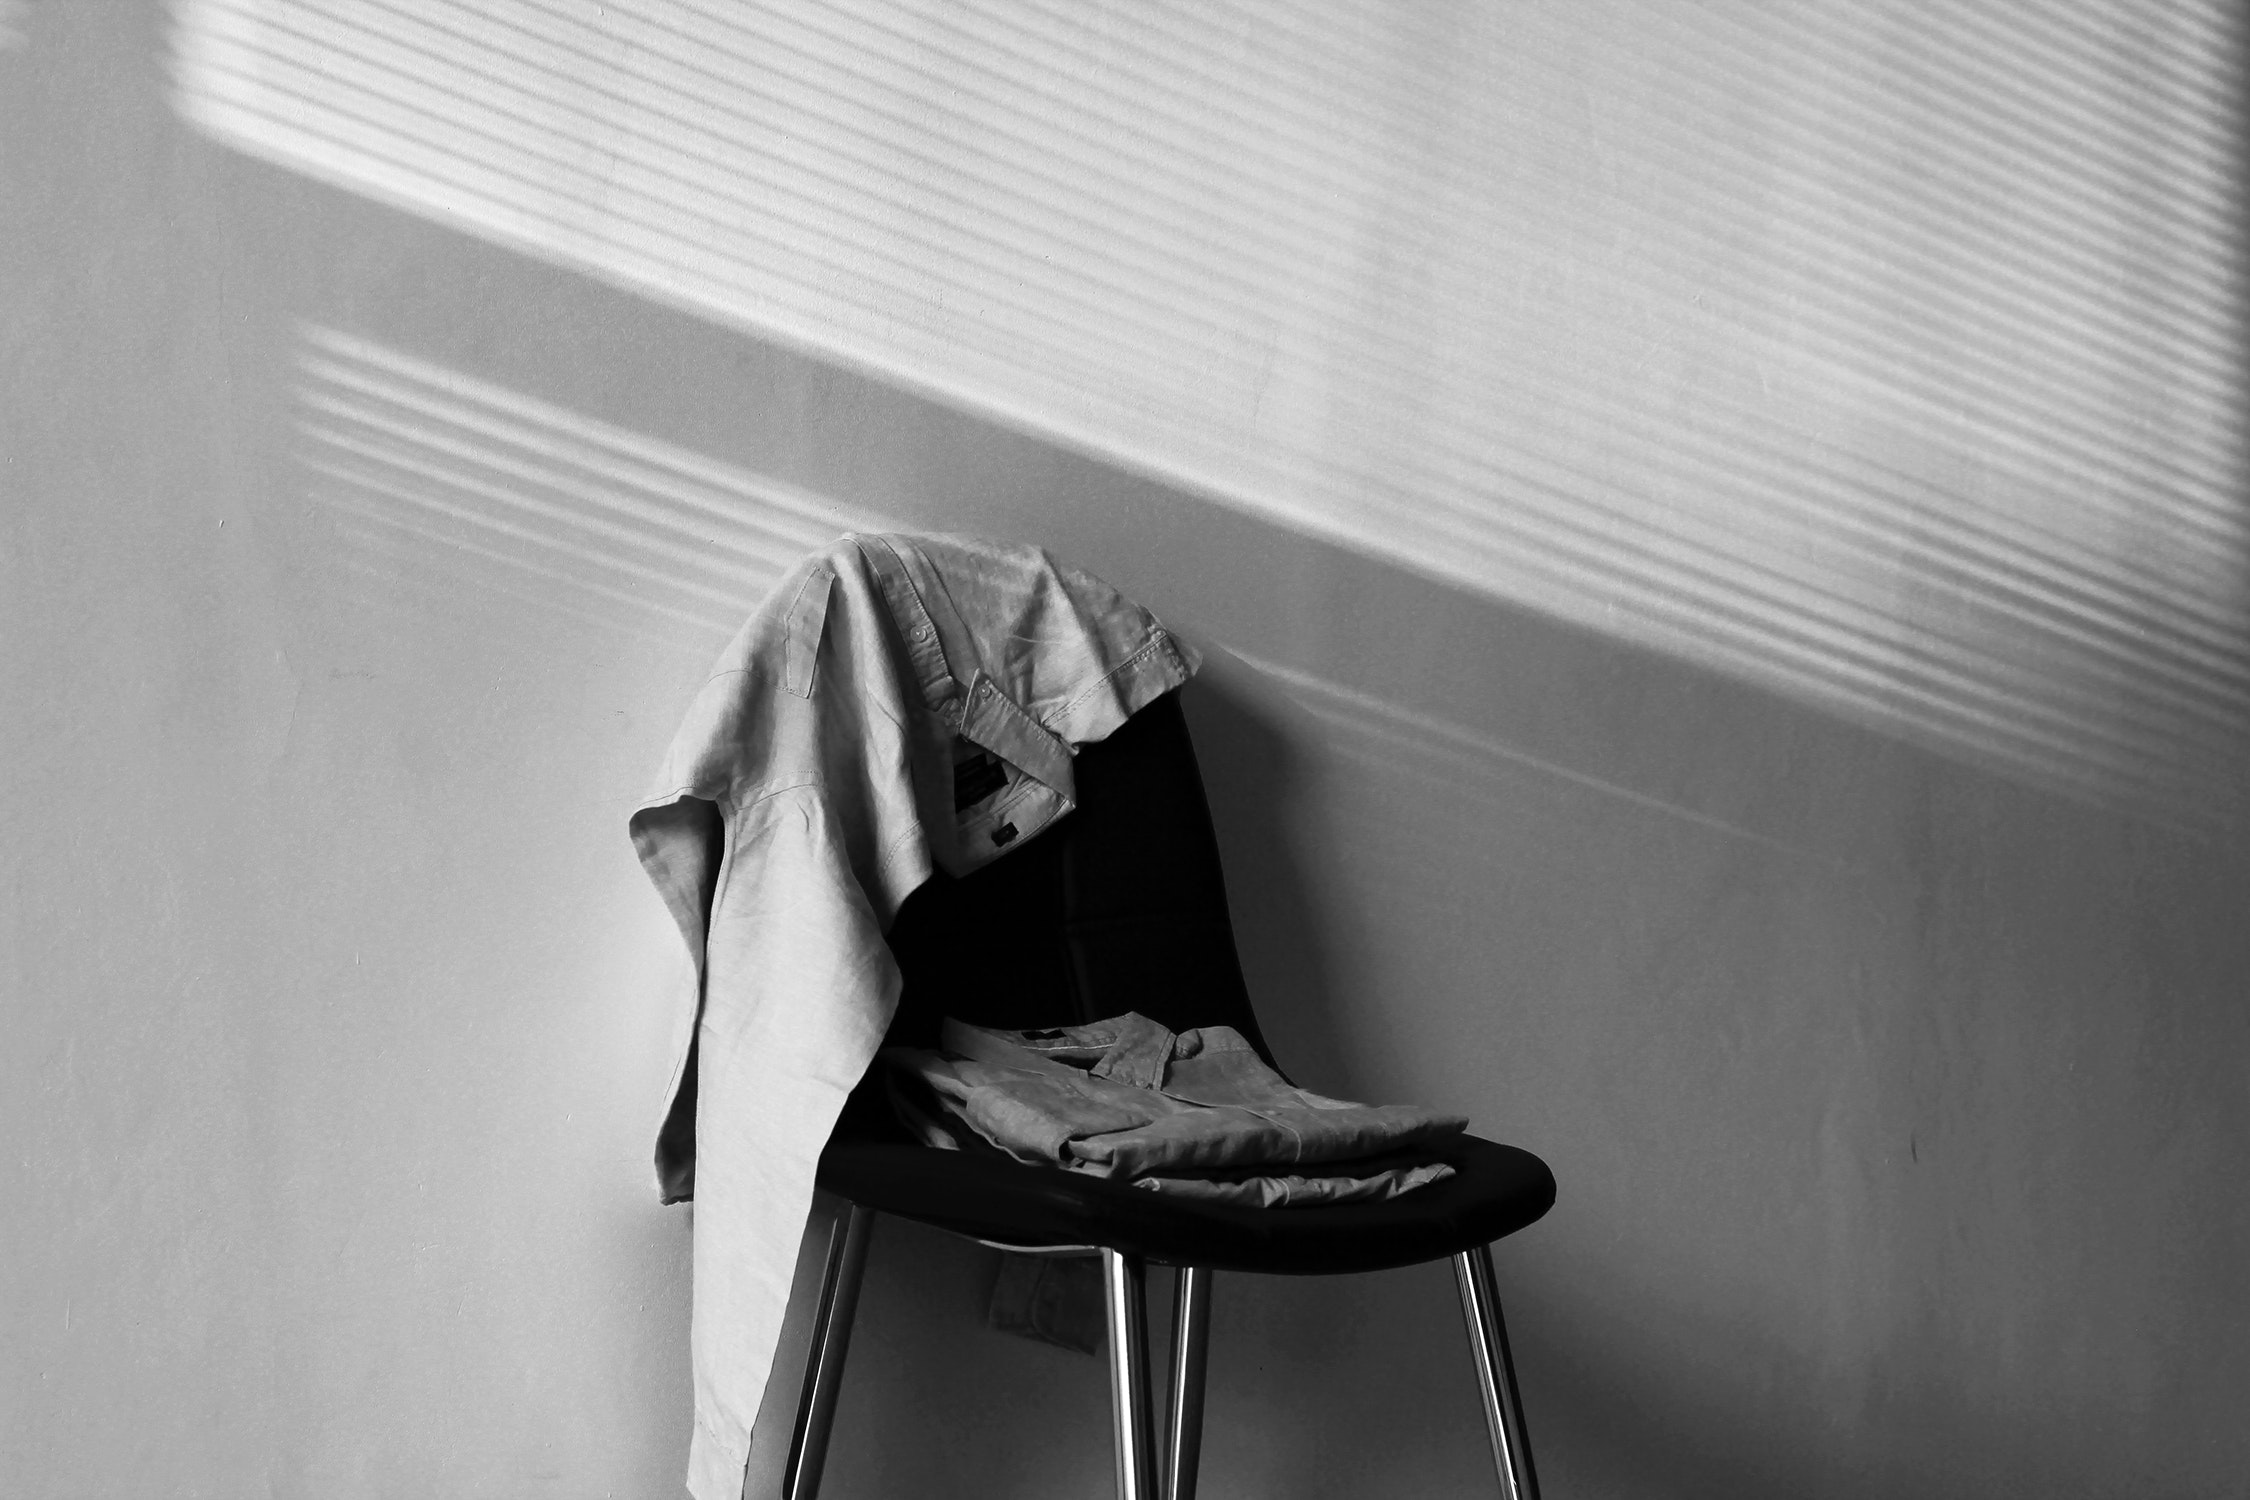 black-and-white-chair-lifestyle-60342.jpg